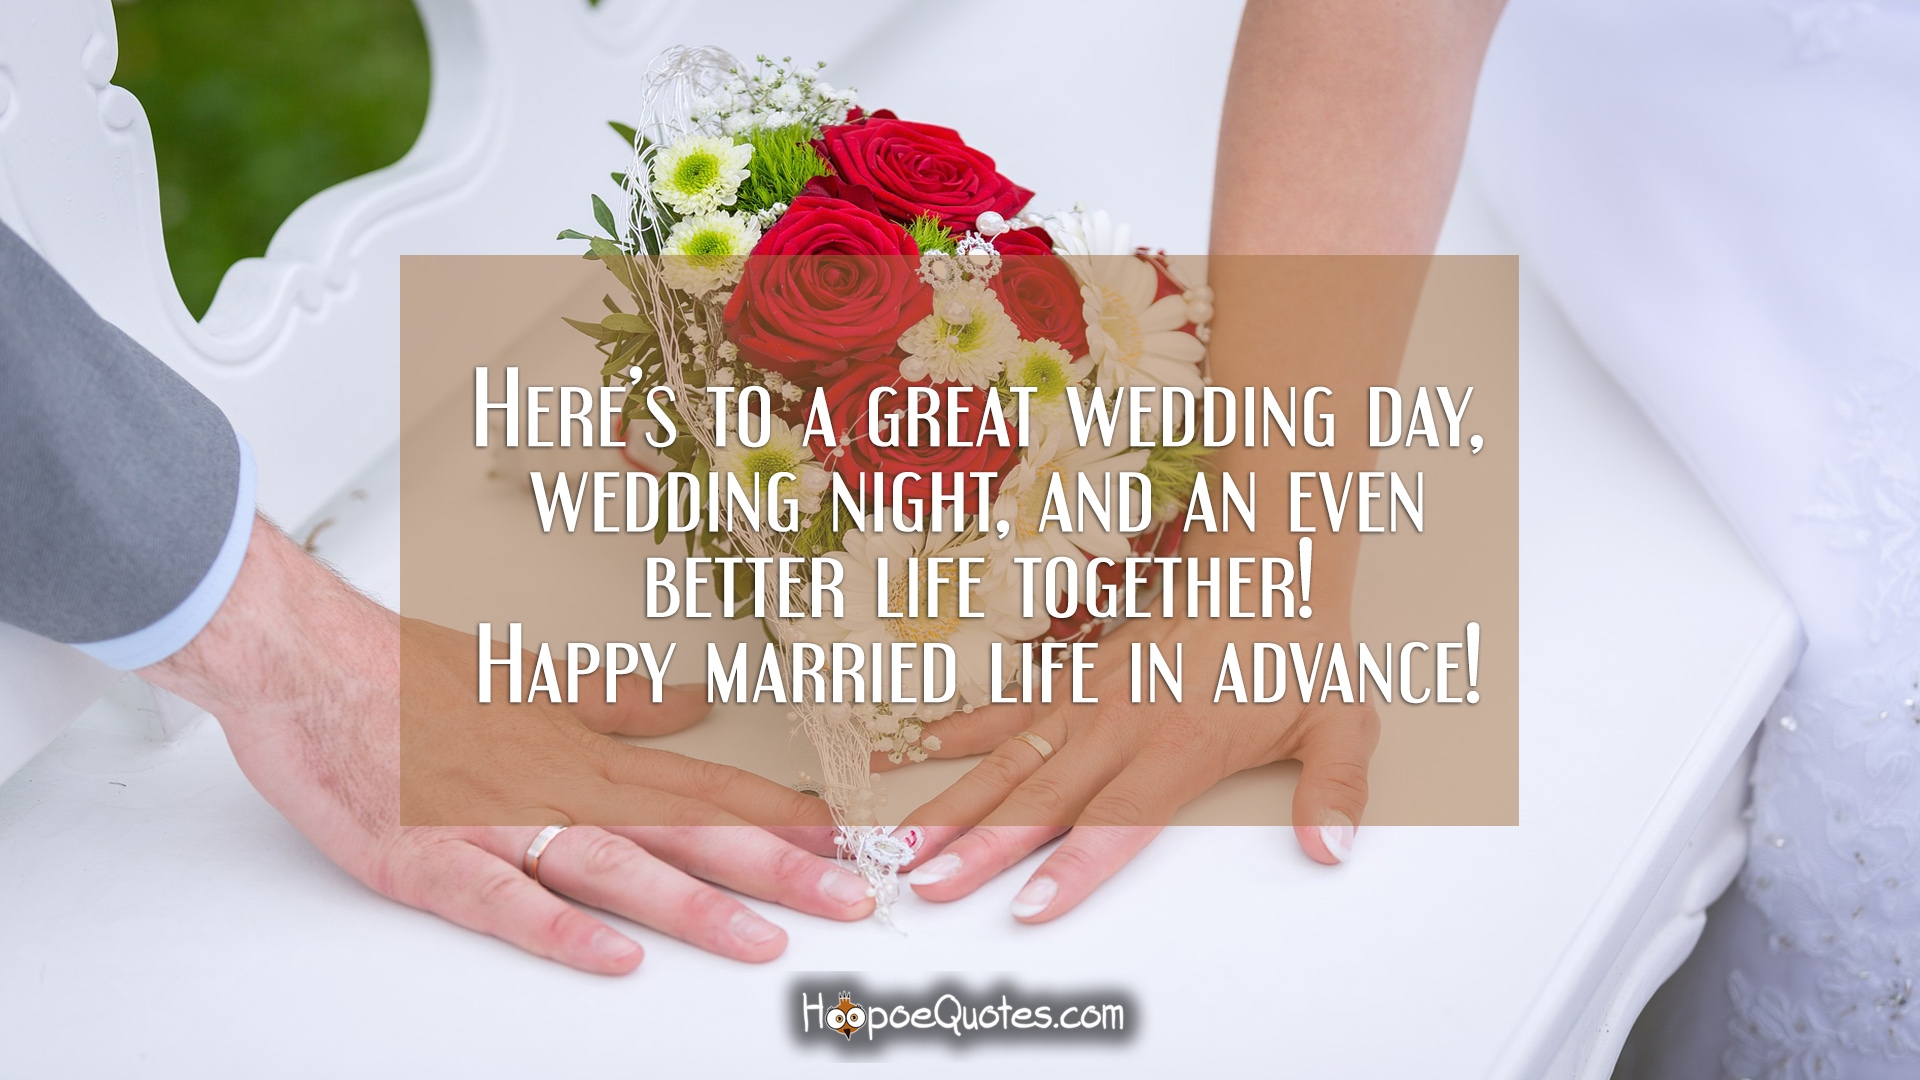 Heres To A Great Wedding Day Wedding Night And An Even Better